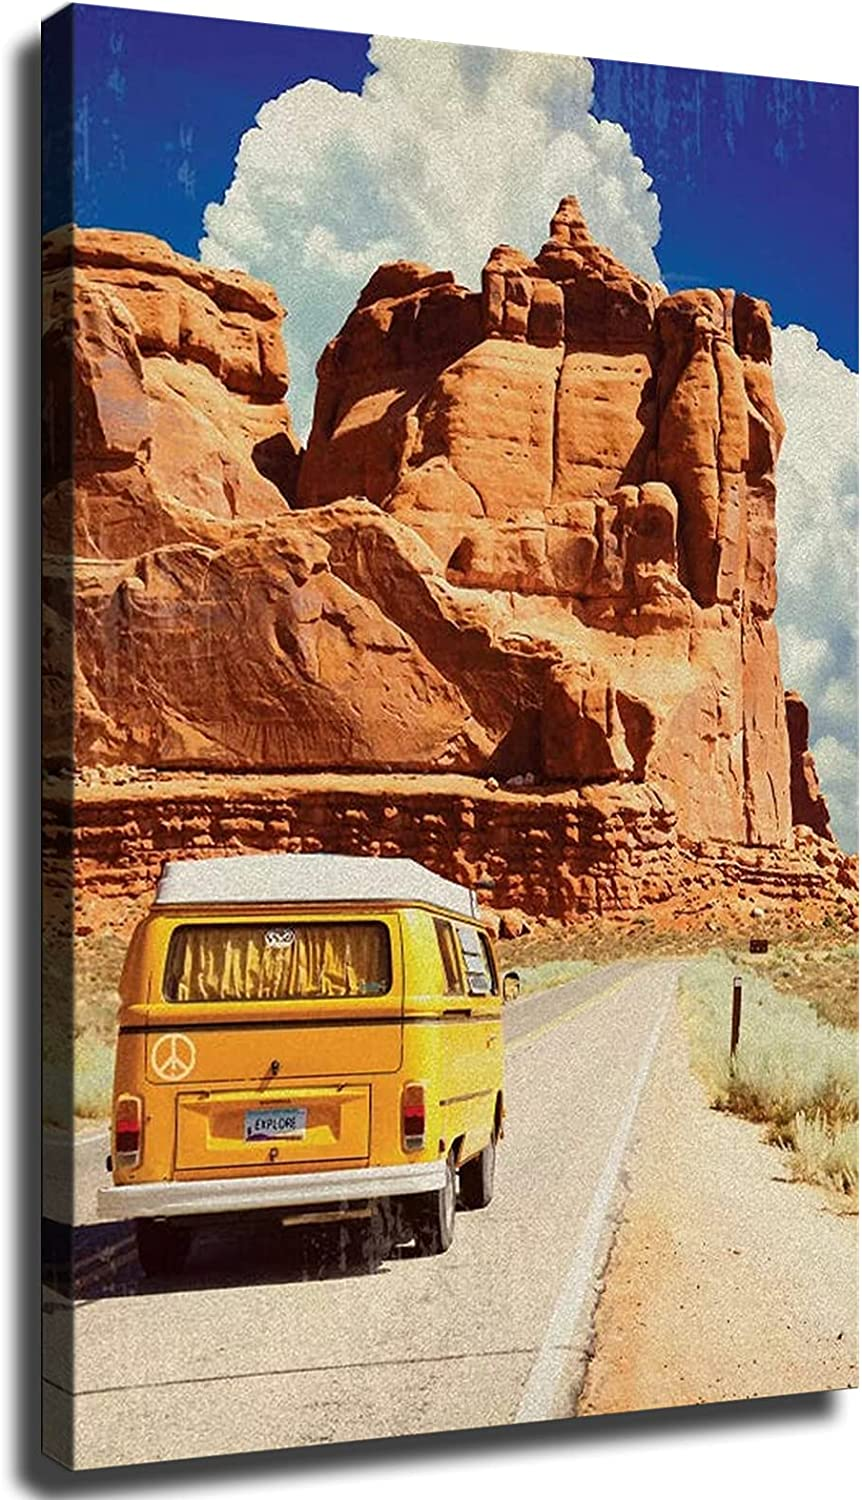 Arizona Crusin Poster Canvas Print Kit Luxury Modern Wall Art Manufacturer direct delivery Classroom